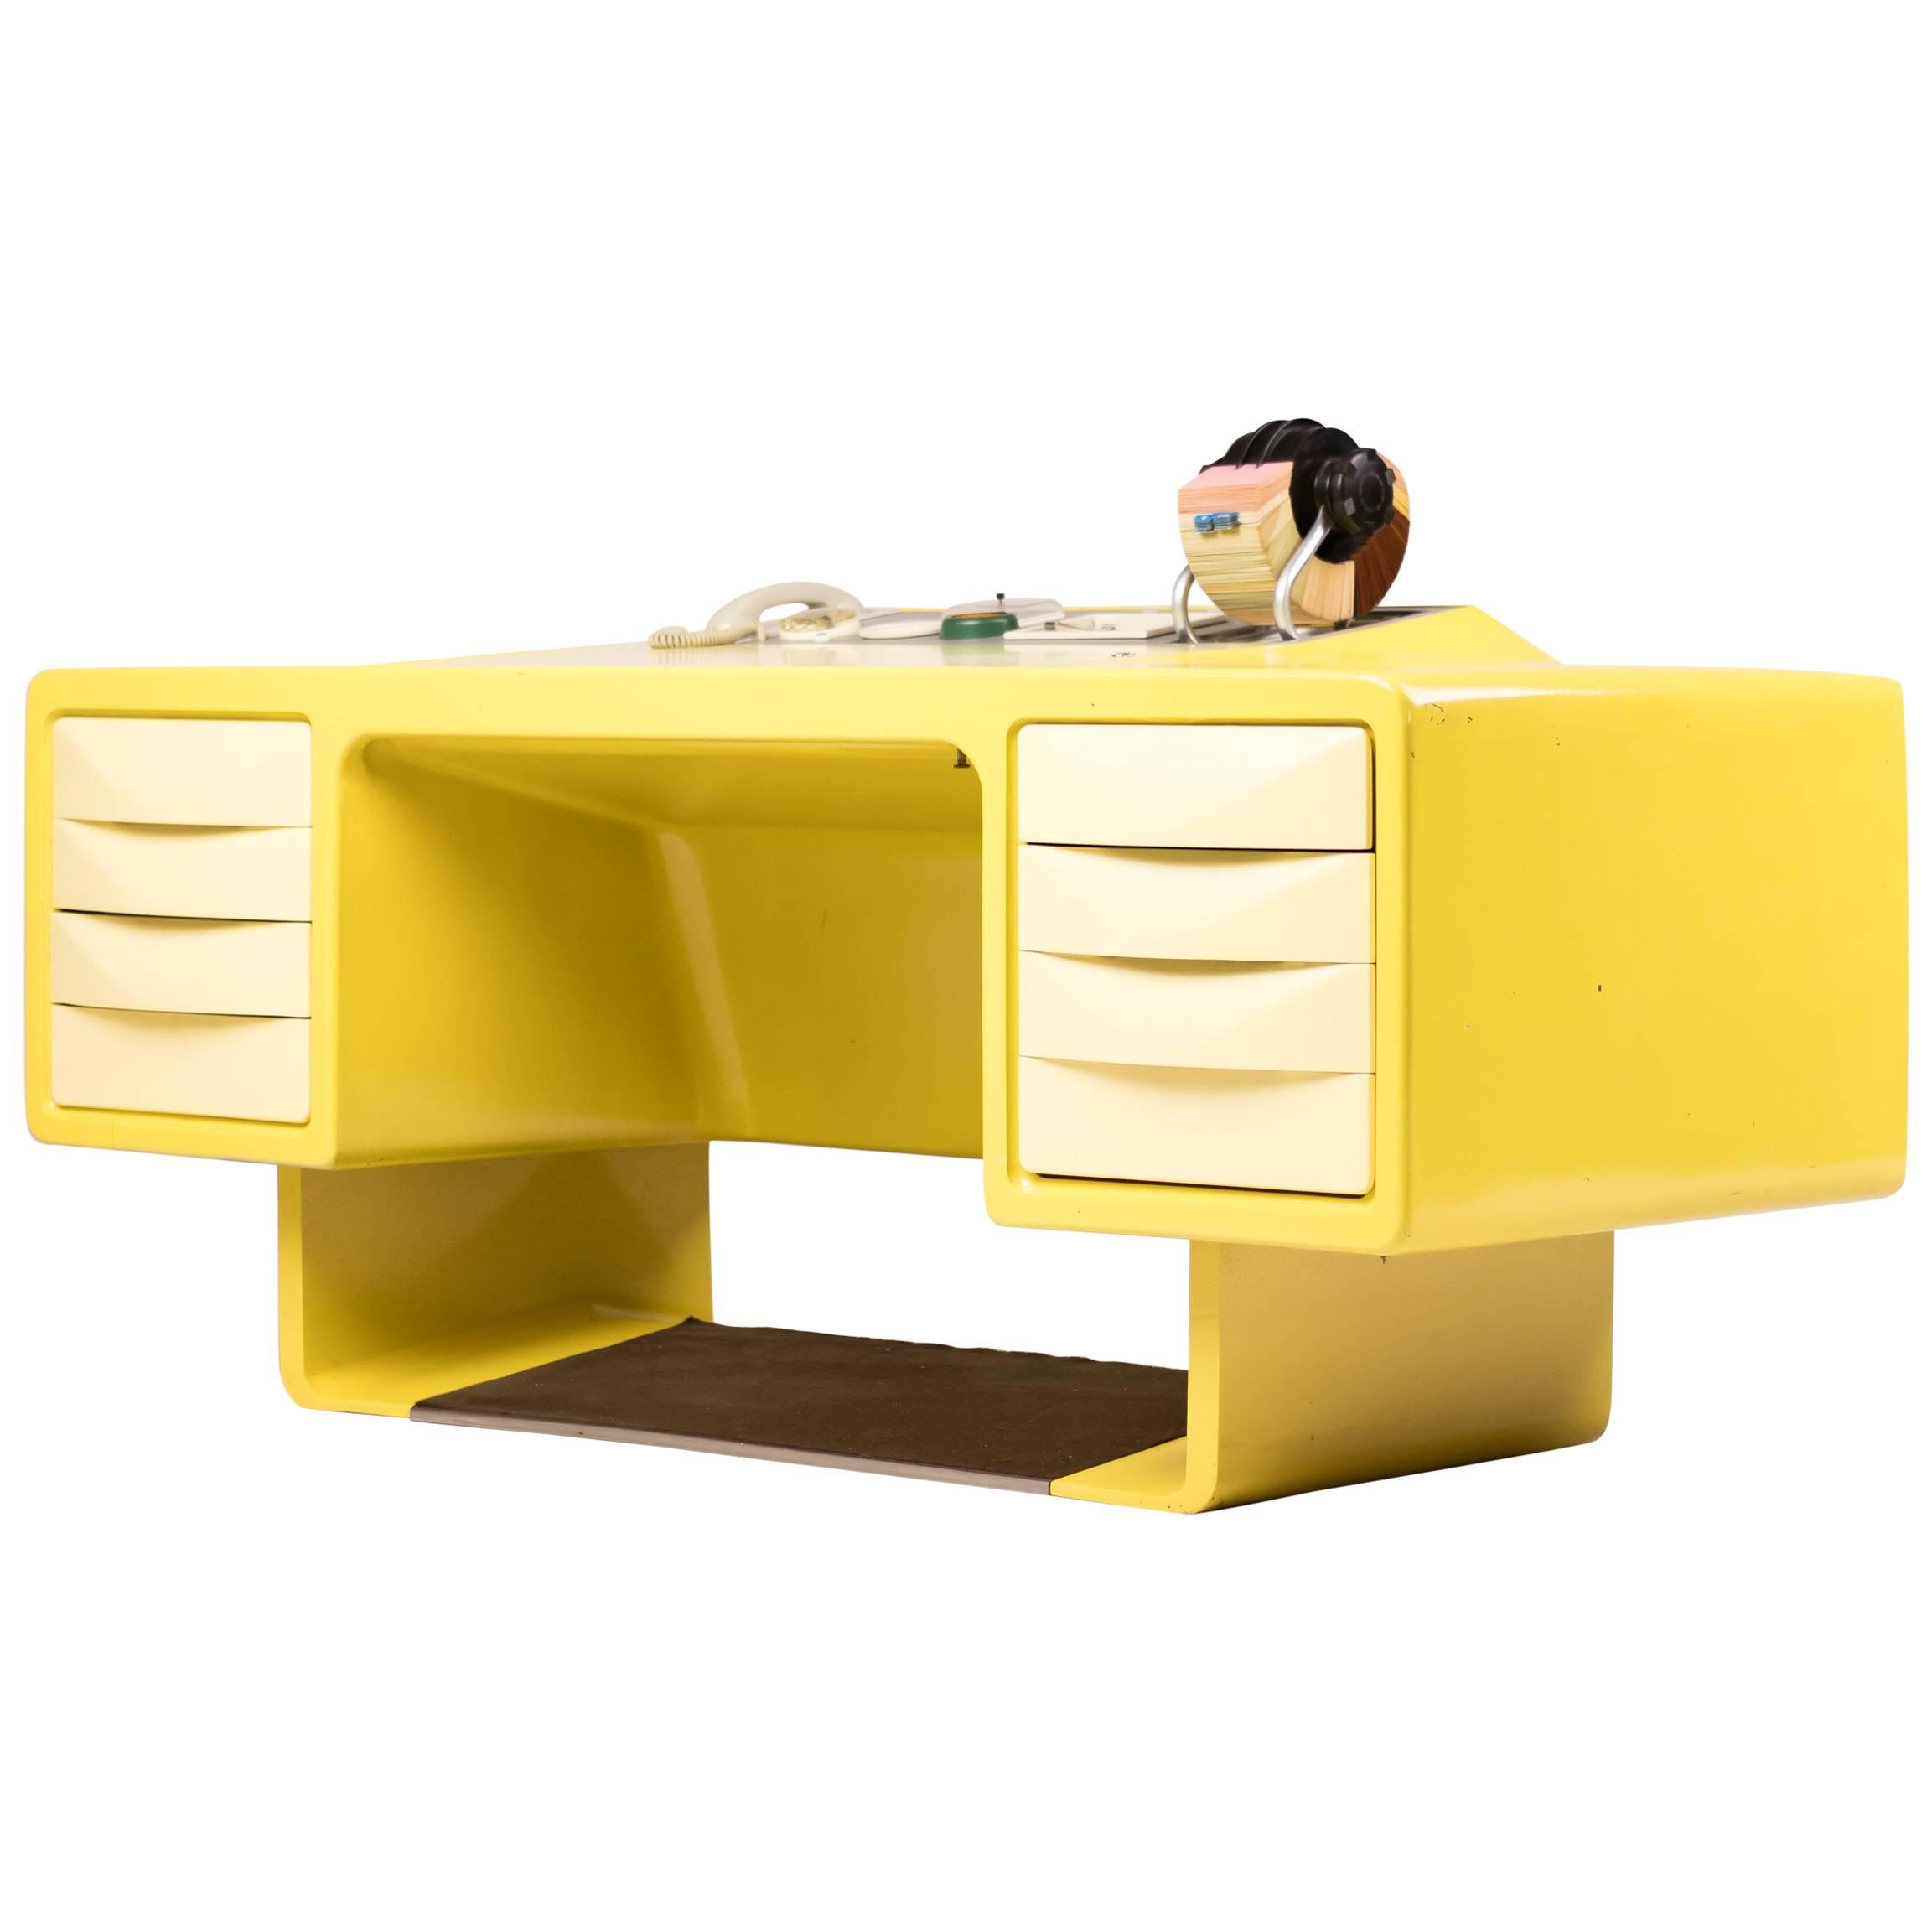 furniture premium pu desk national walsh table school tables sons peter yellow classroom